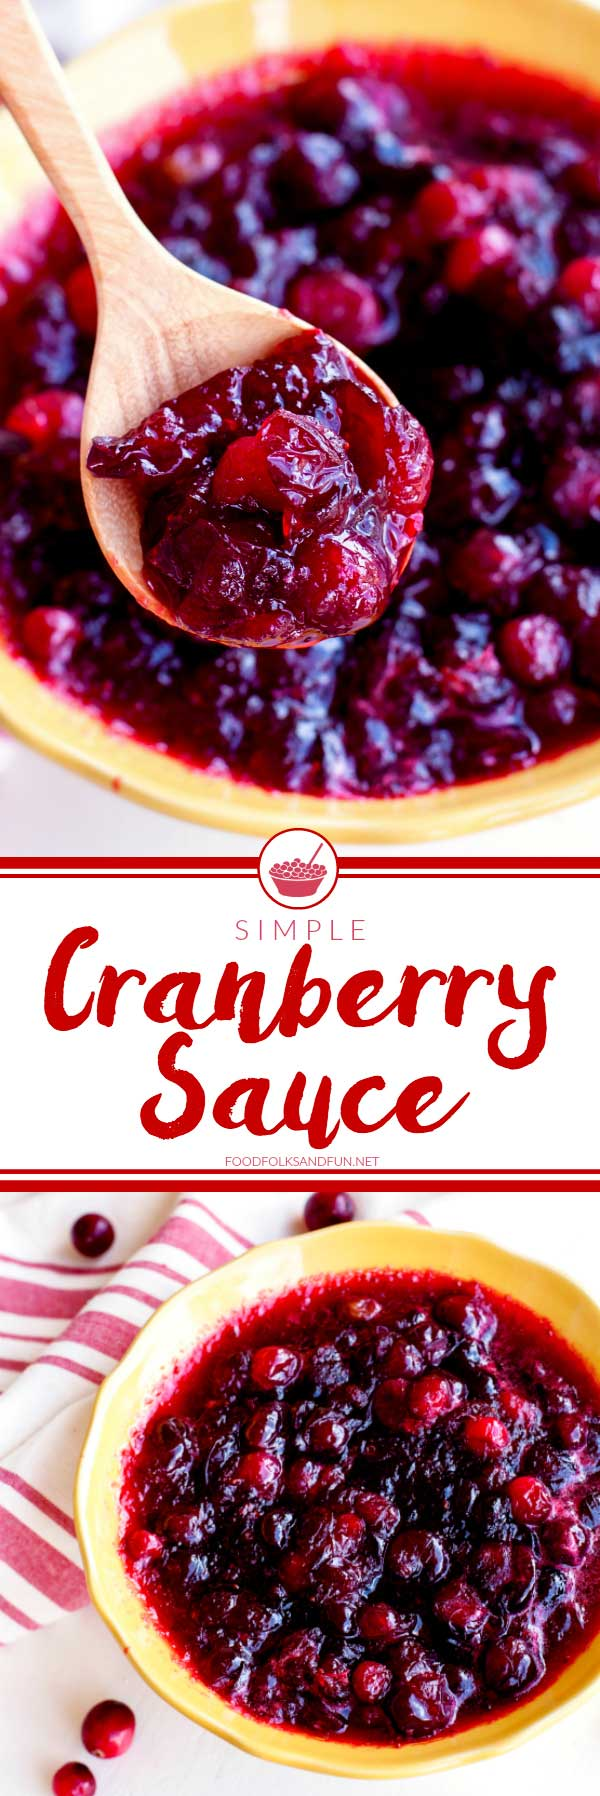 No Thanksgiving table is complete without Cranberry Sauce! You only need 4 ingredients to make this Simple Cranberry Sauce recipe; it really can't get any simpler.